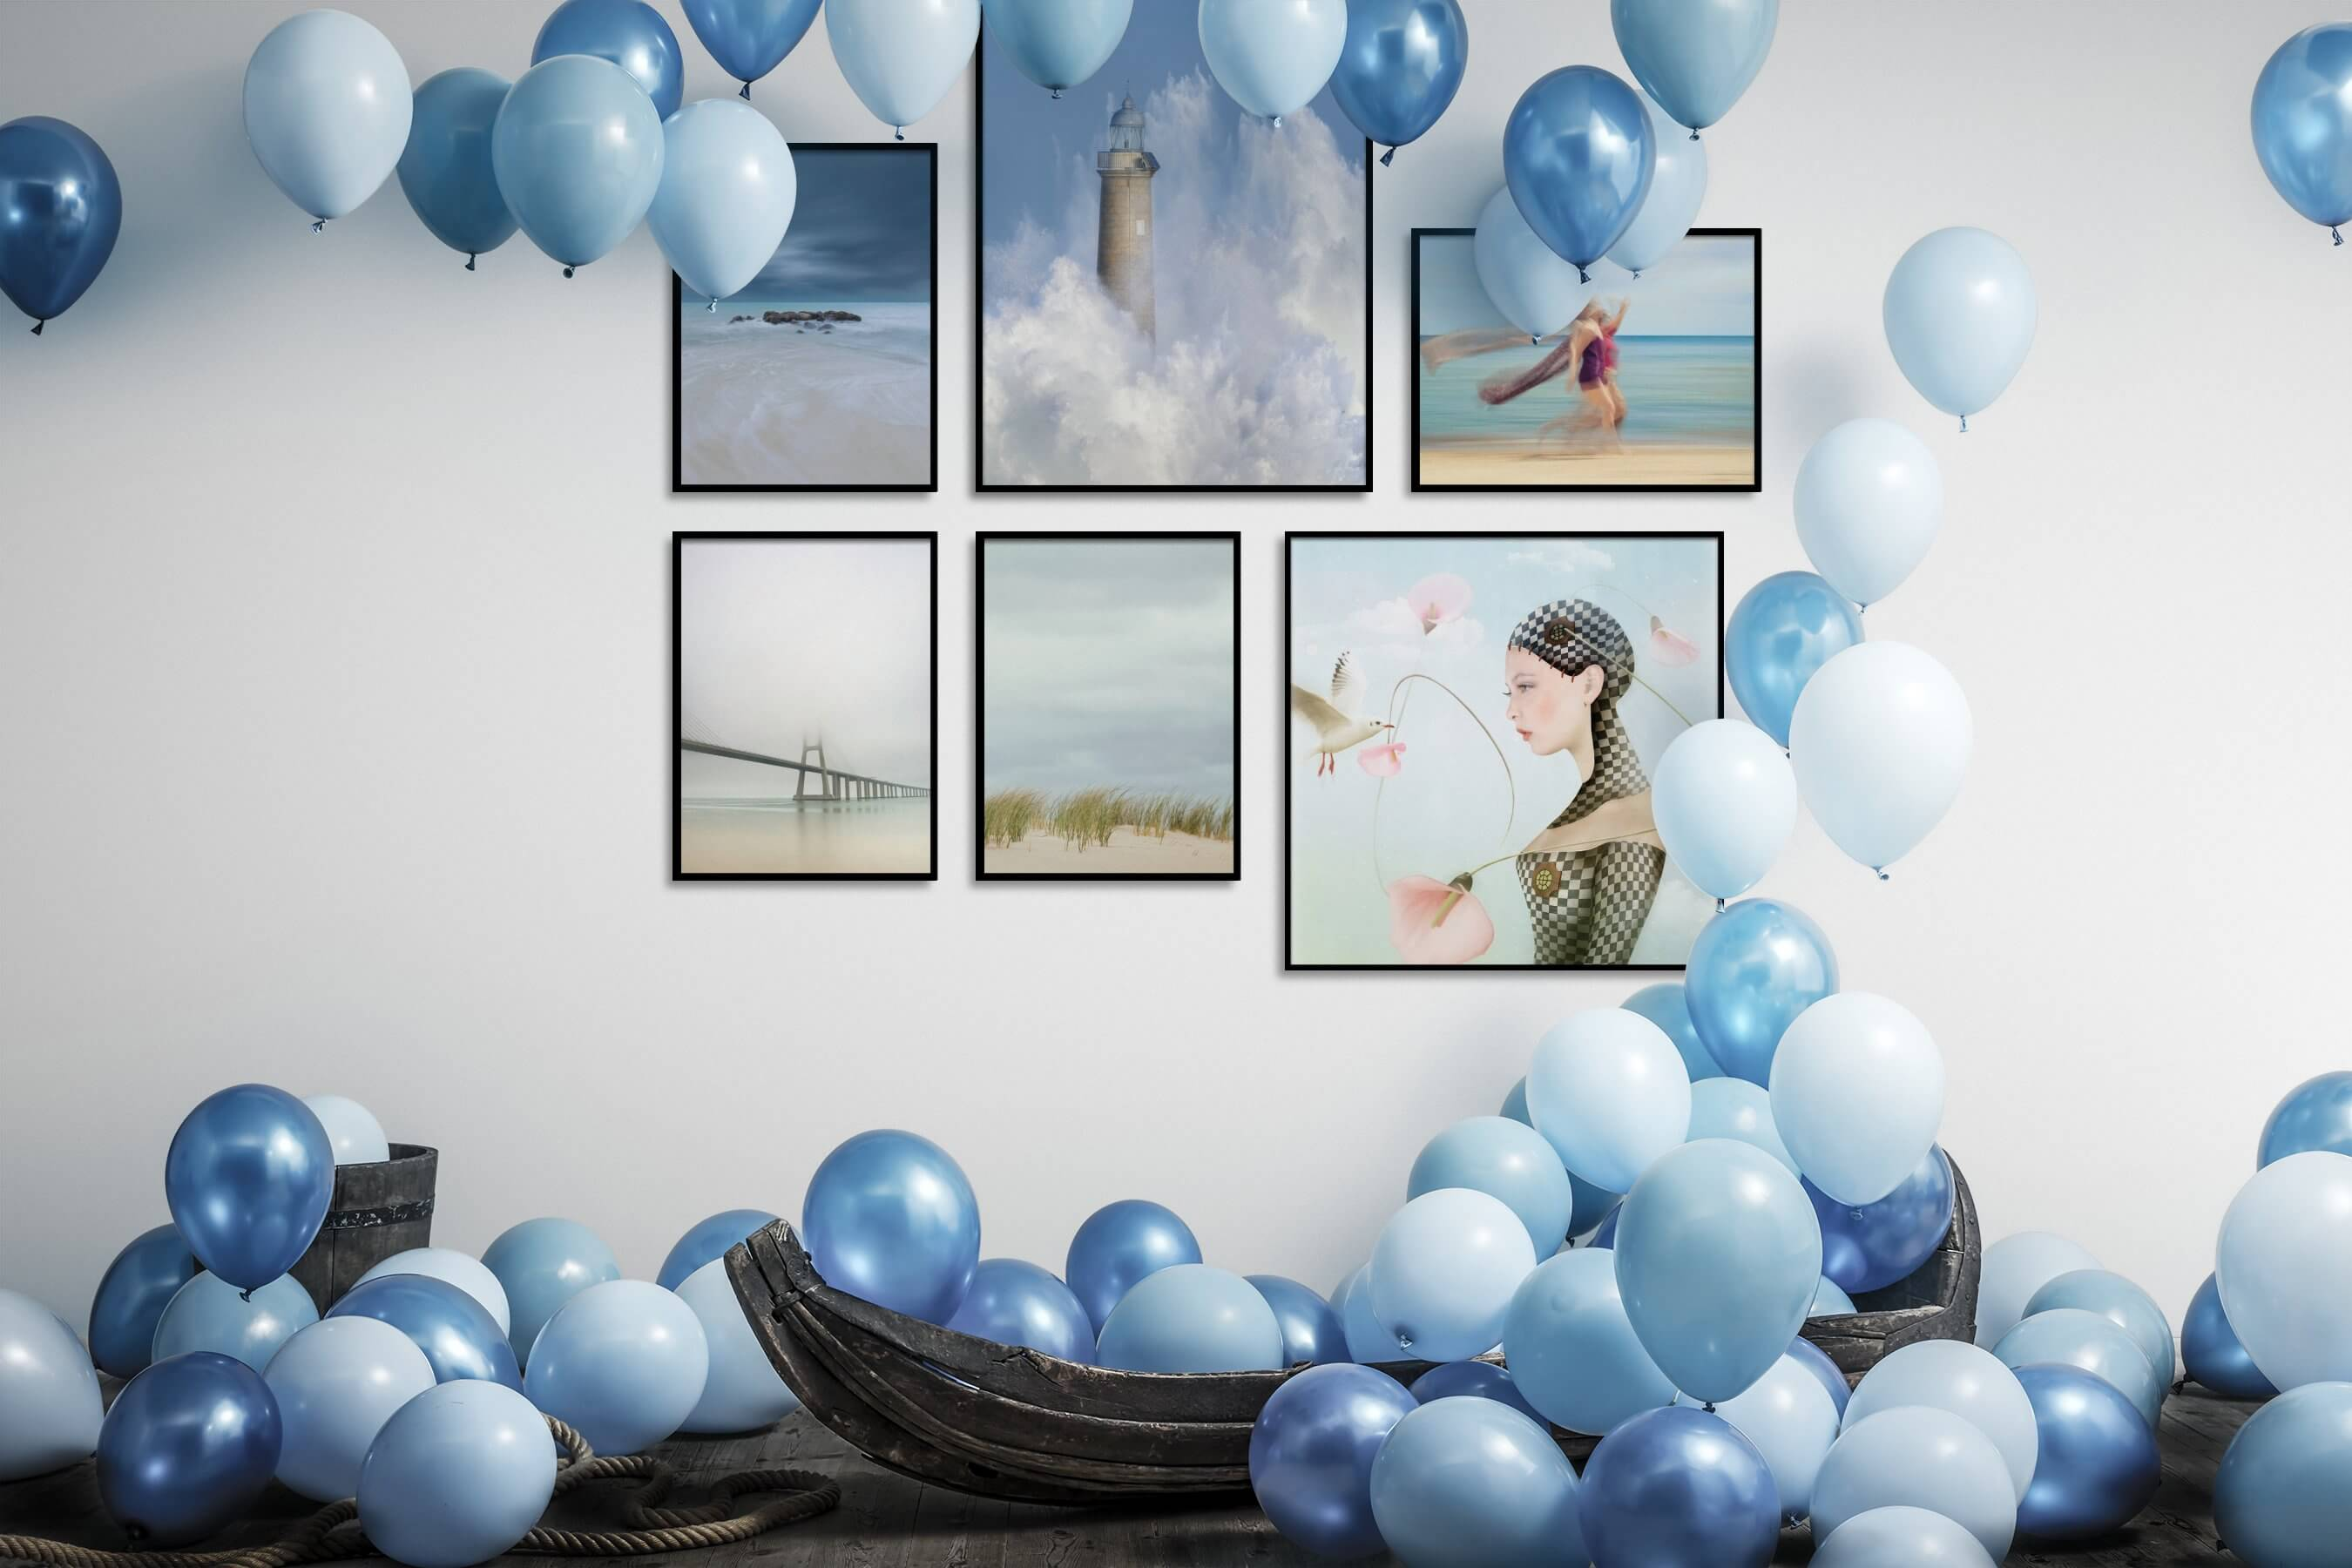 Gallery wall idea with six framed pictures arranged on a wall depicting For the Minimalist, Beach & Water, Mindfulness, For the Moderate, Artsy, and Fashion & Beauty